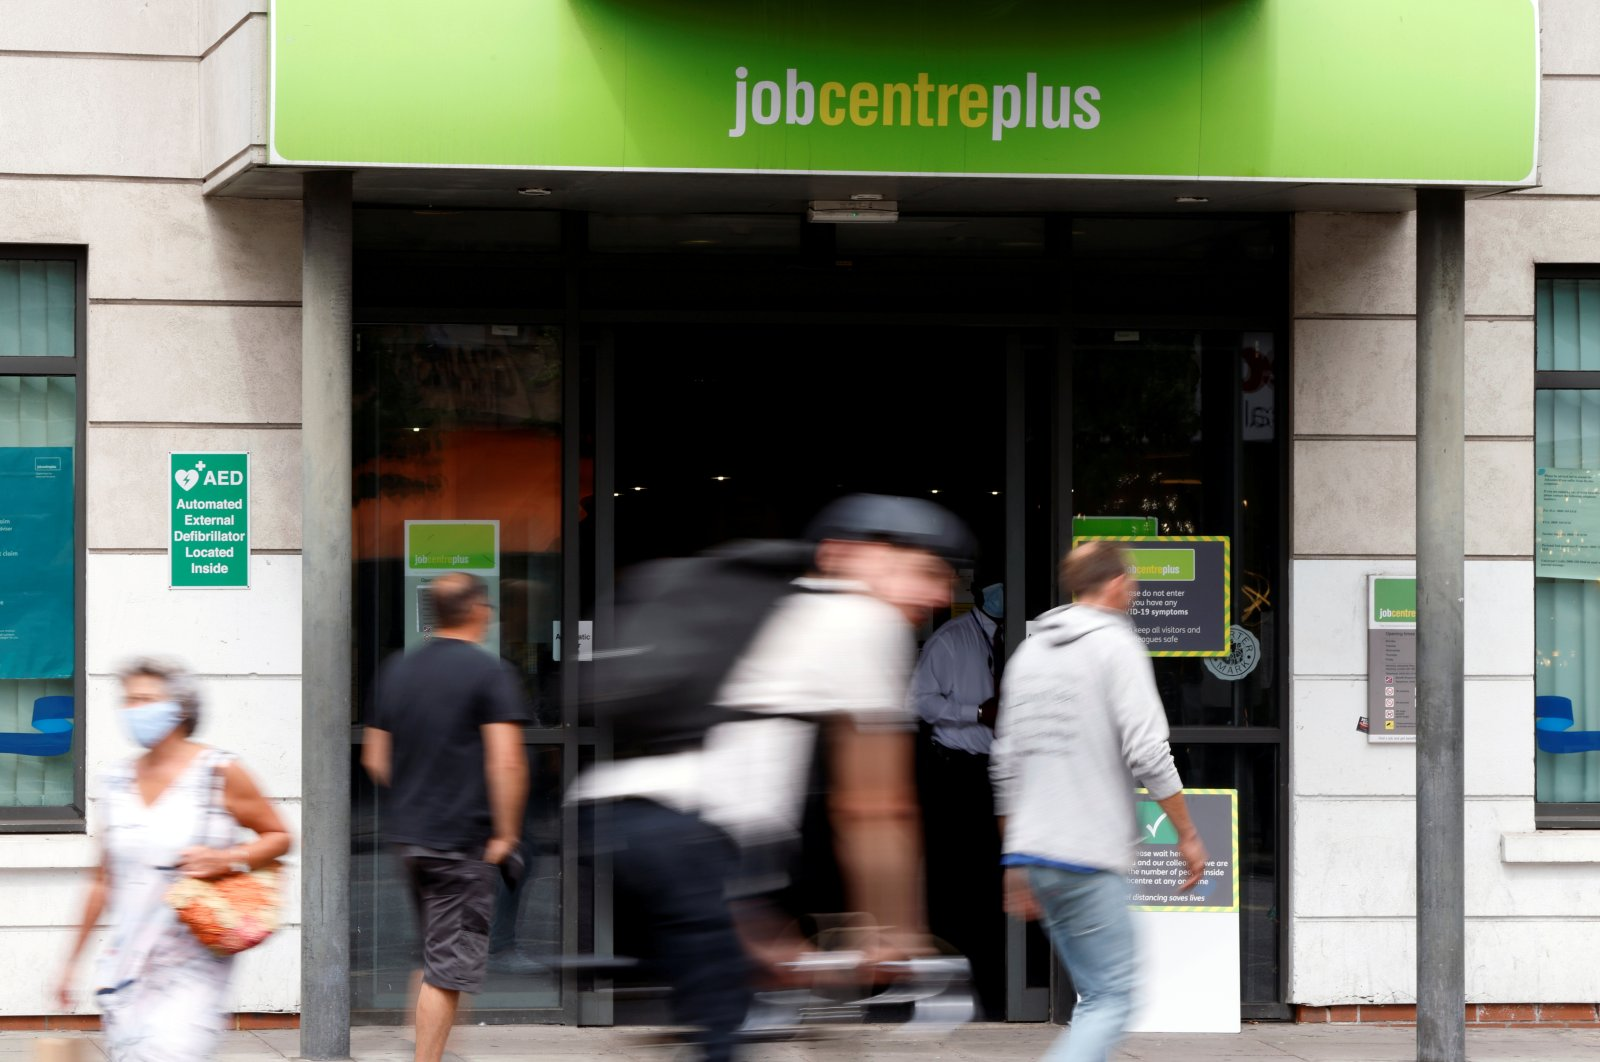 People walk past a branch of Jobcentre Plus, a government-run employment support and benefits agency, as the outbreak of the coronavirus disease (COVID-19) continues, in Hackney, London, Britain, Aug. 6, 2020. (Reuters Photo)